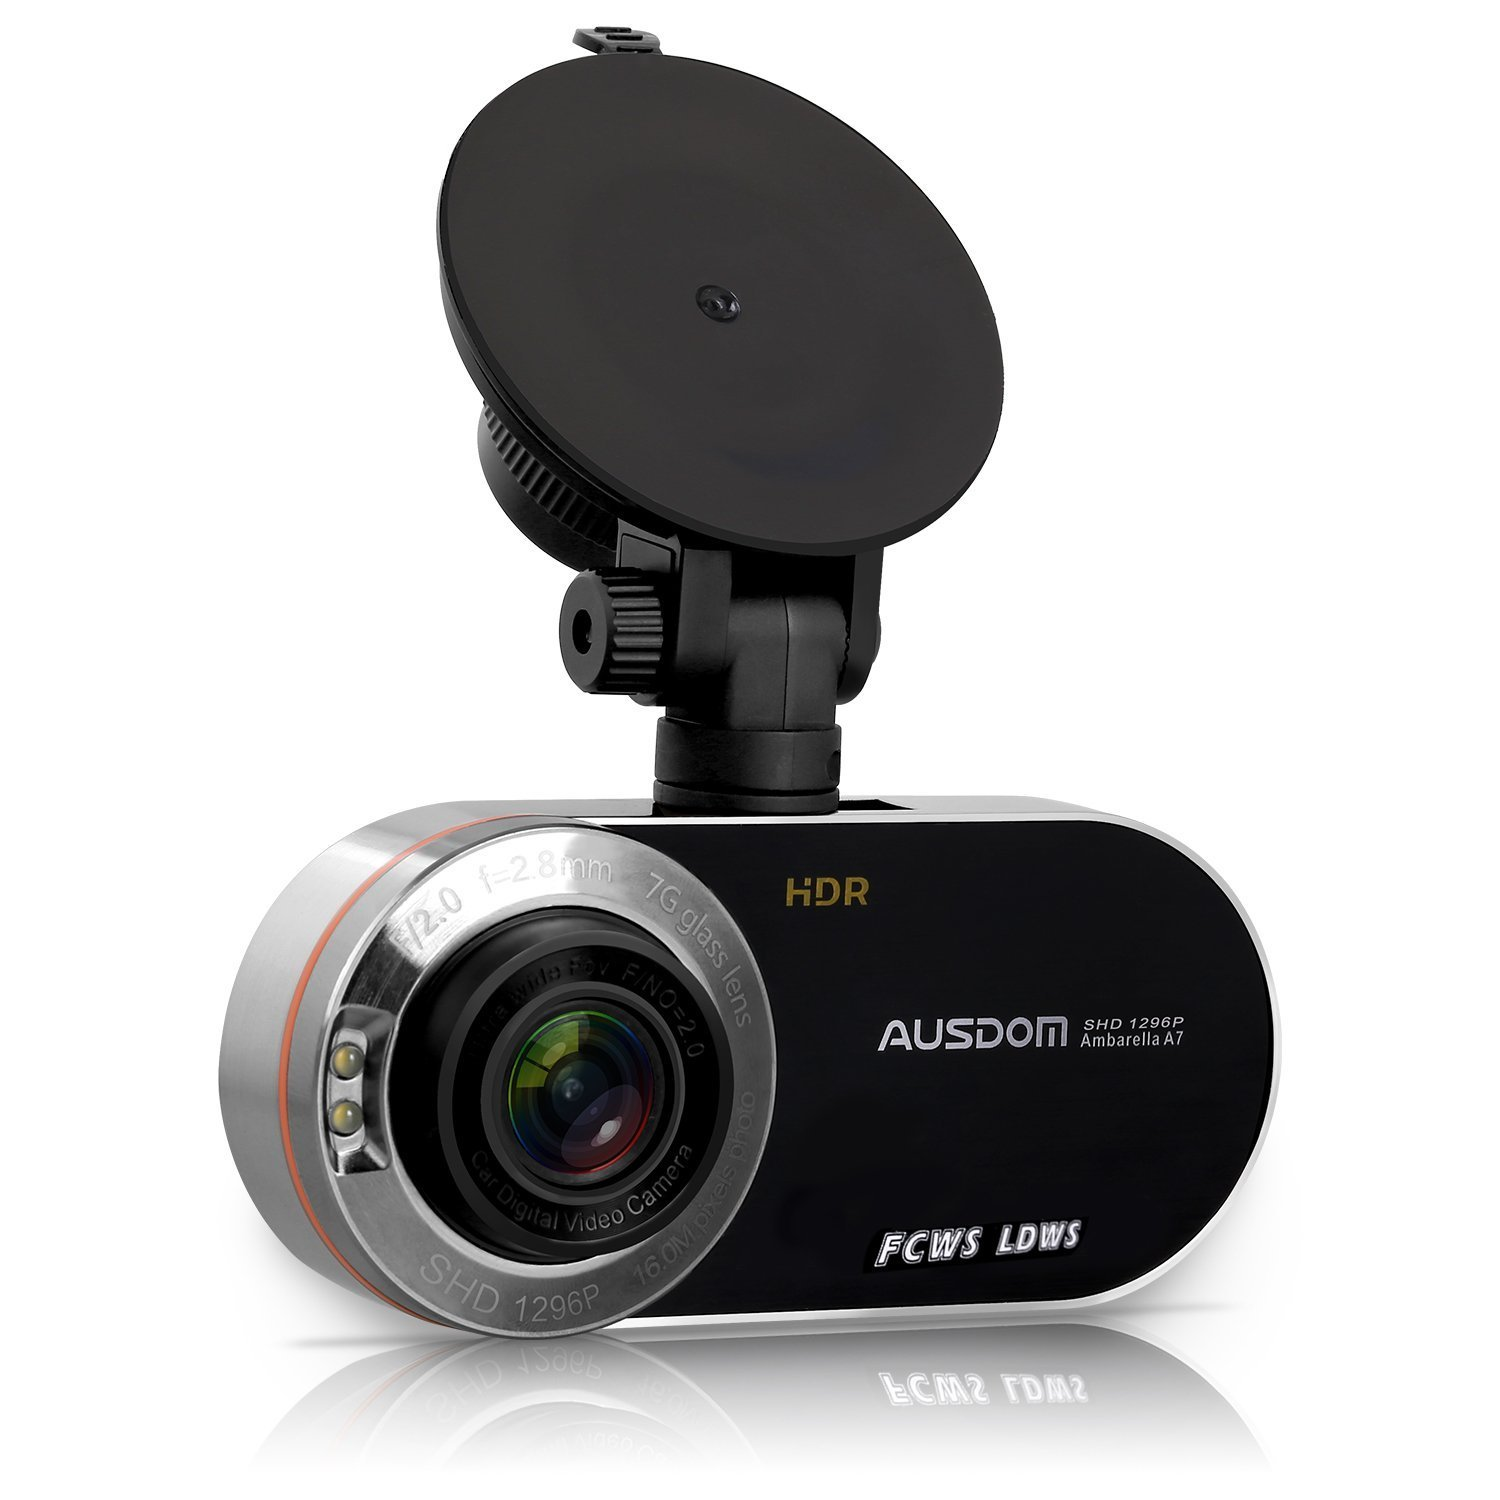 """AUSDOM AD260 2.7"""" LCD Dash Cam FHD 1080P&1296P Dashboard Camera Car Camera with HDR, WDR, G-Sensor, Motion Detection, Parking Monitor"""